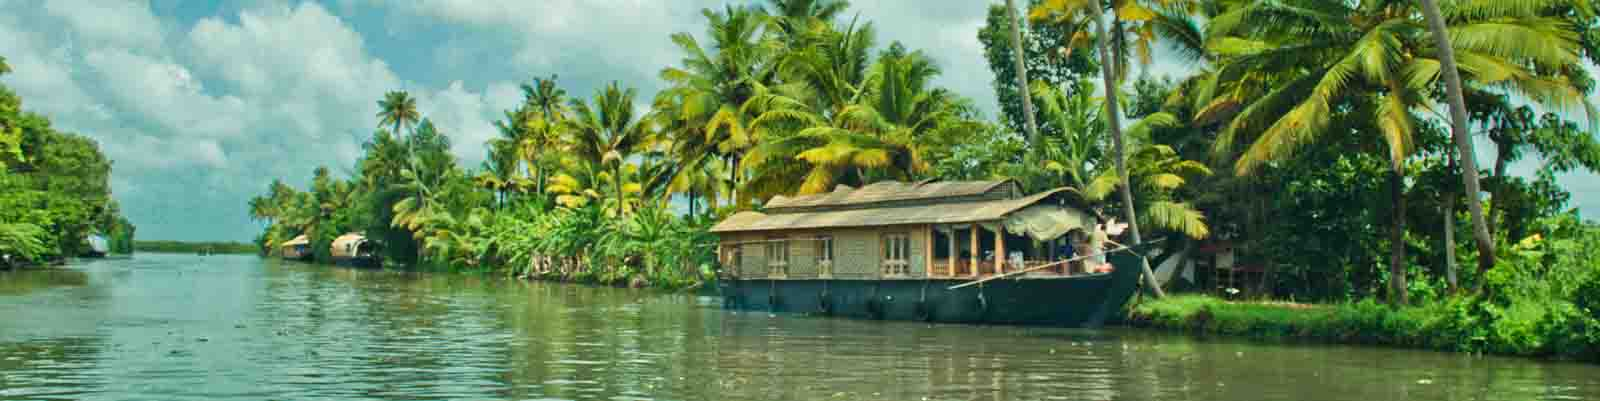 kerala tour and honeymoon packages from Nellore